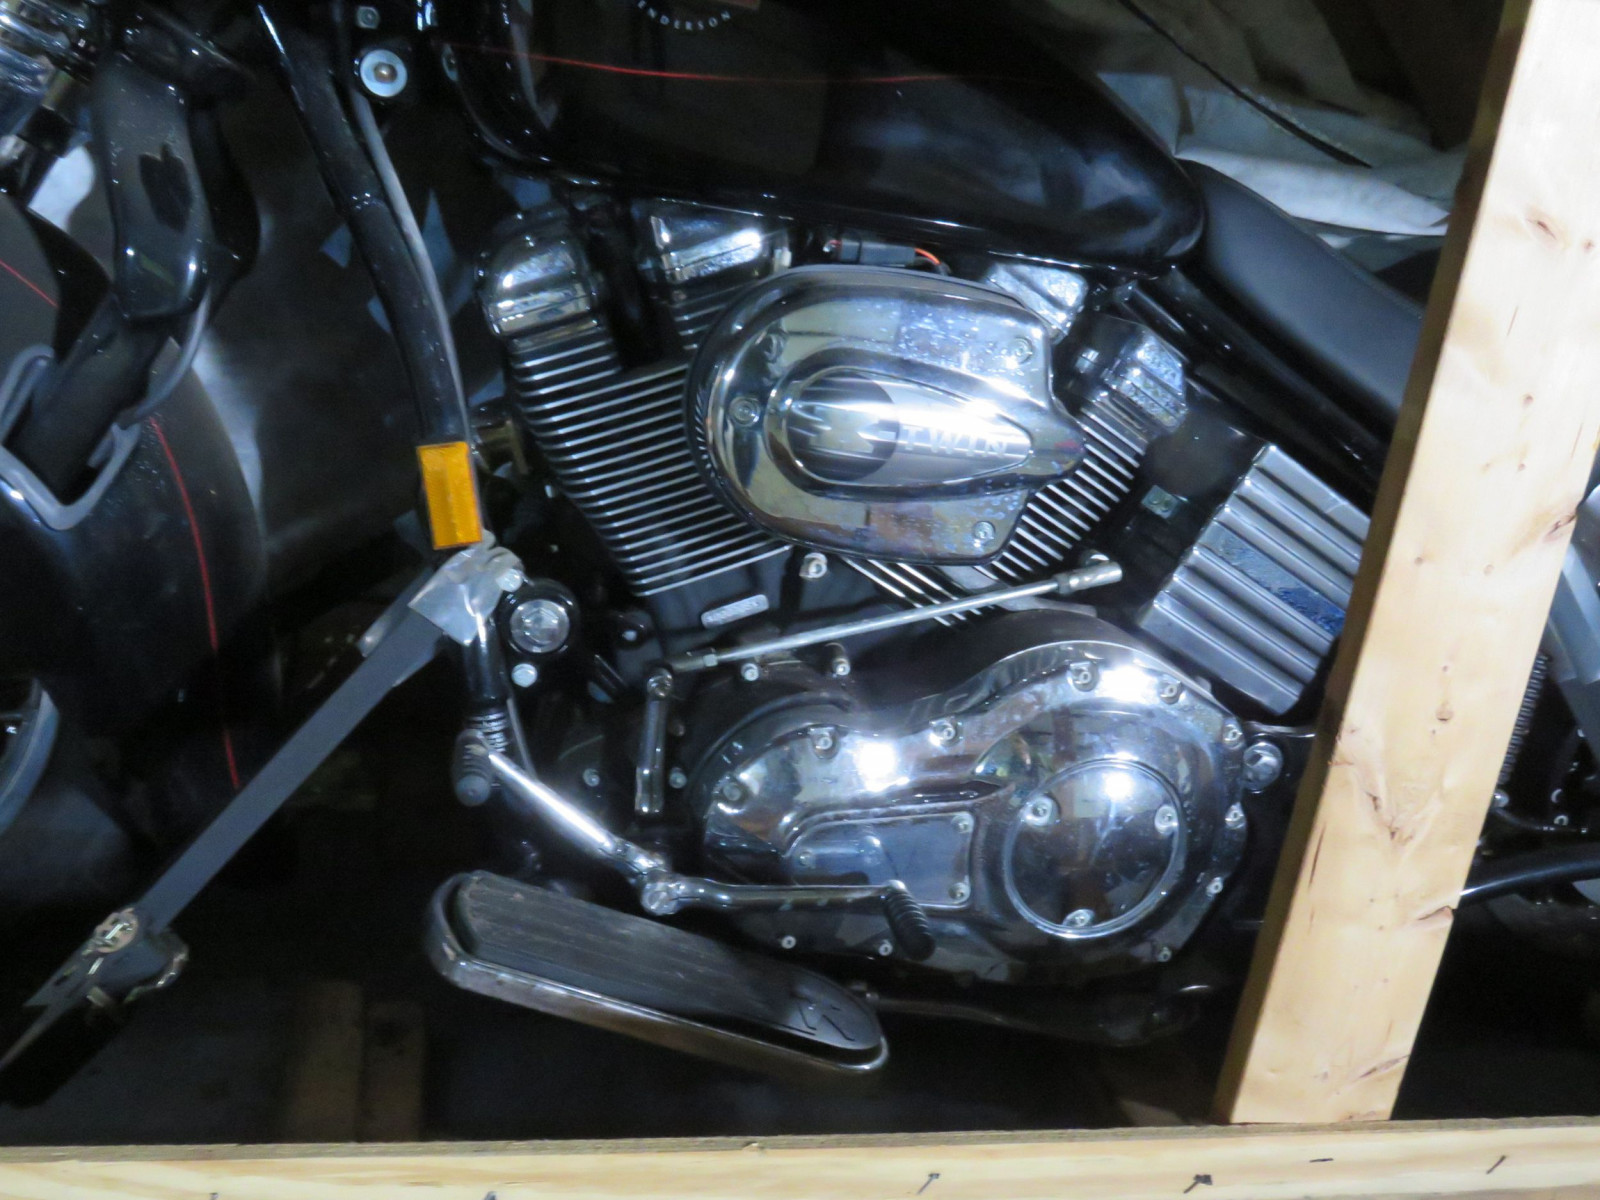 1999 Excelsior Henderson Super X NIB Motorcycle - Image 9